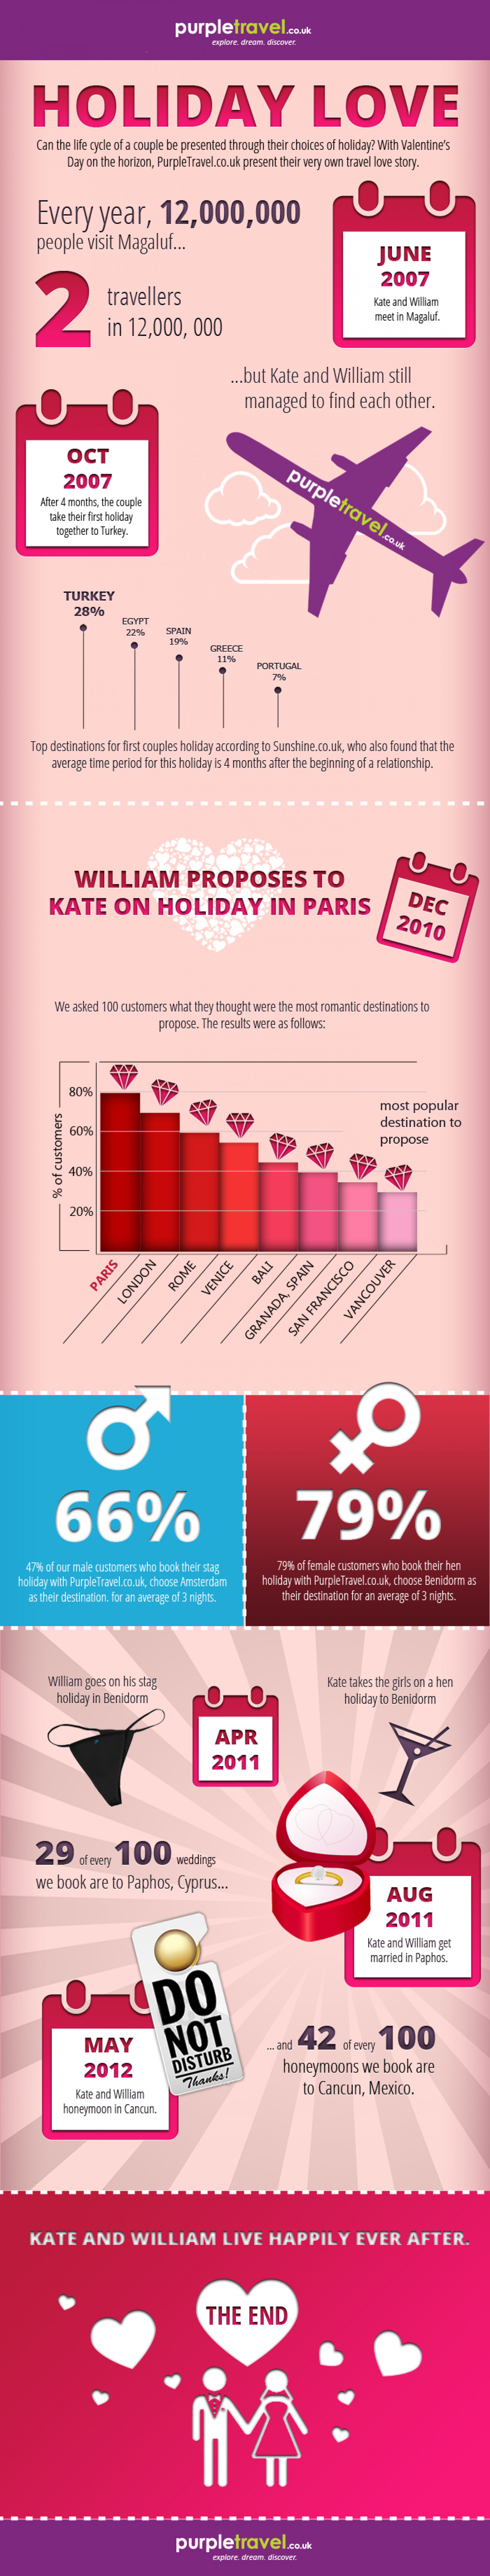 Holiday Love Story Infographic